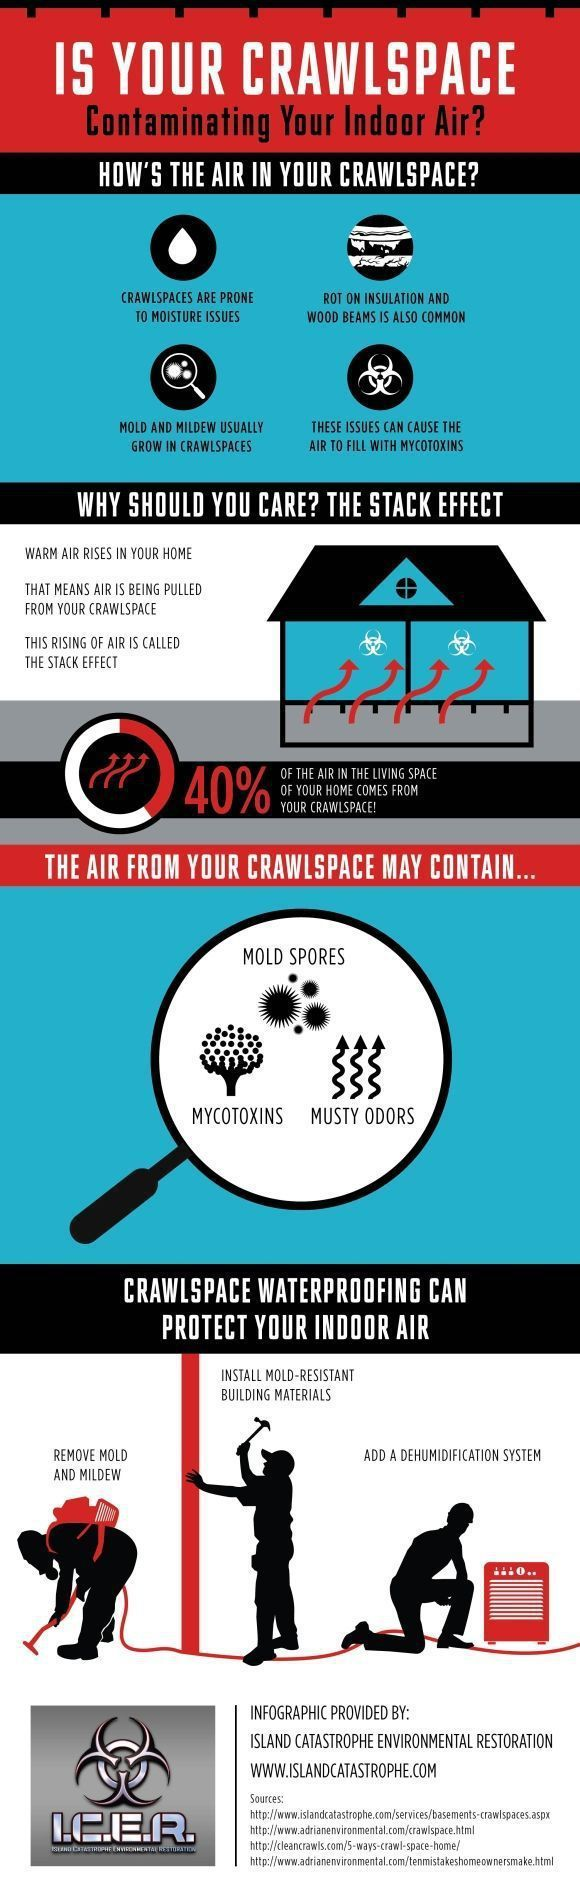 Your Crawlspace and Indoor Air Quality Summary